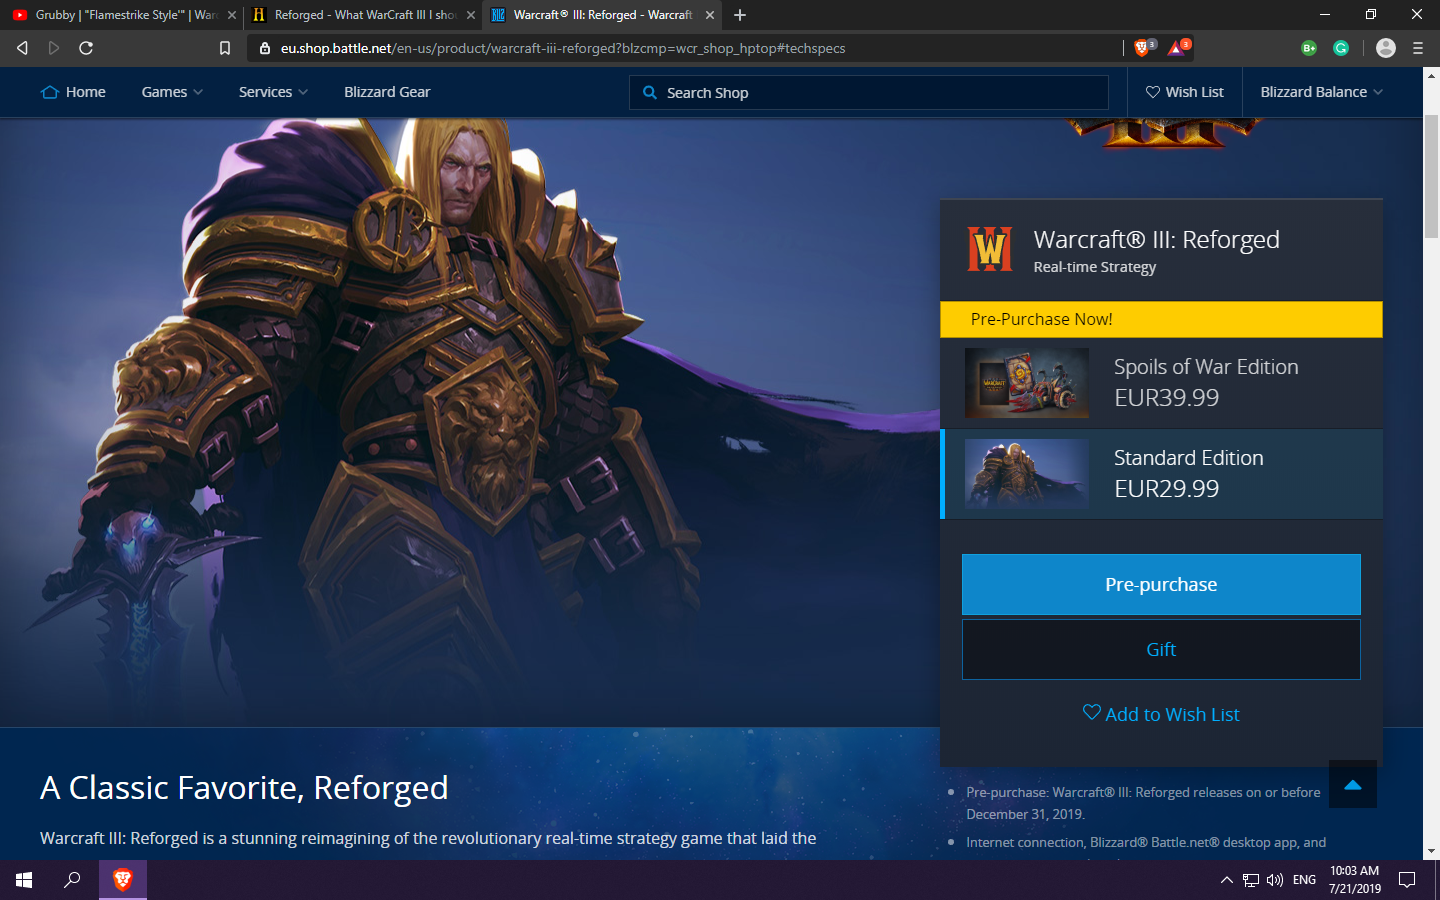 Reforged - What WarCraft III I should buy? | HIVE